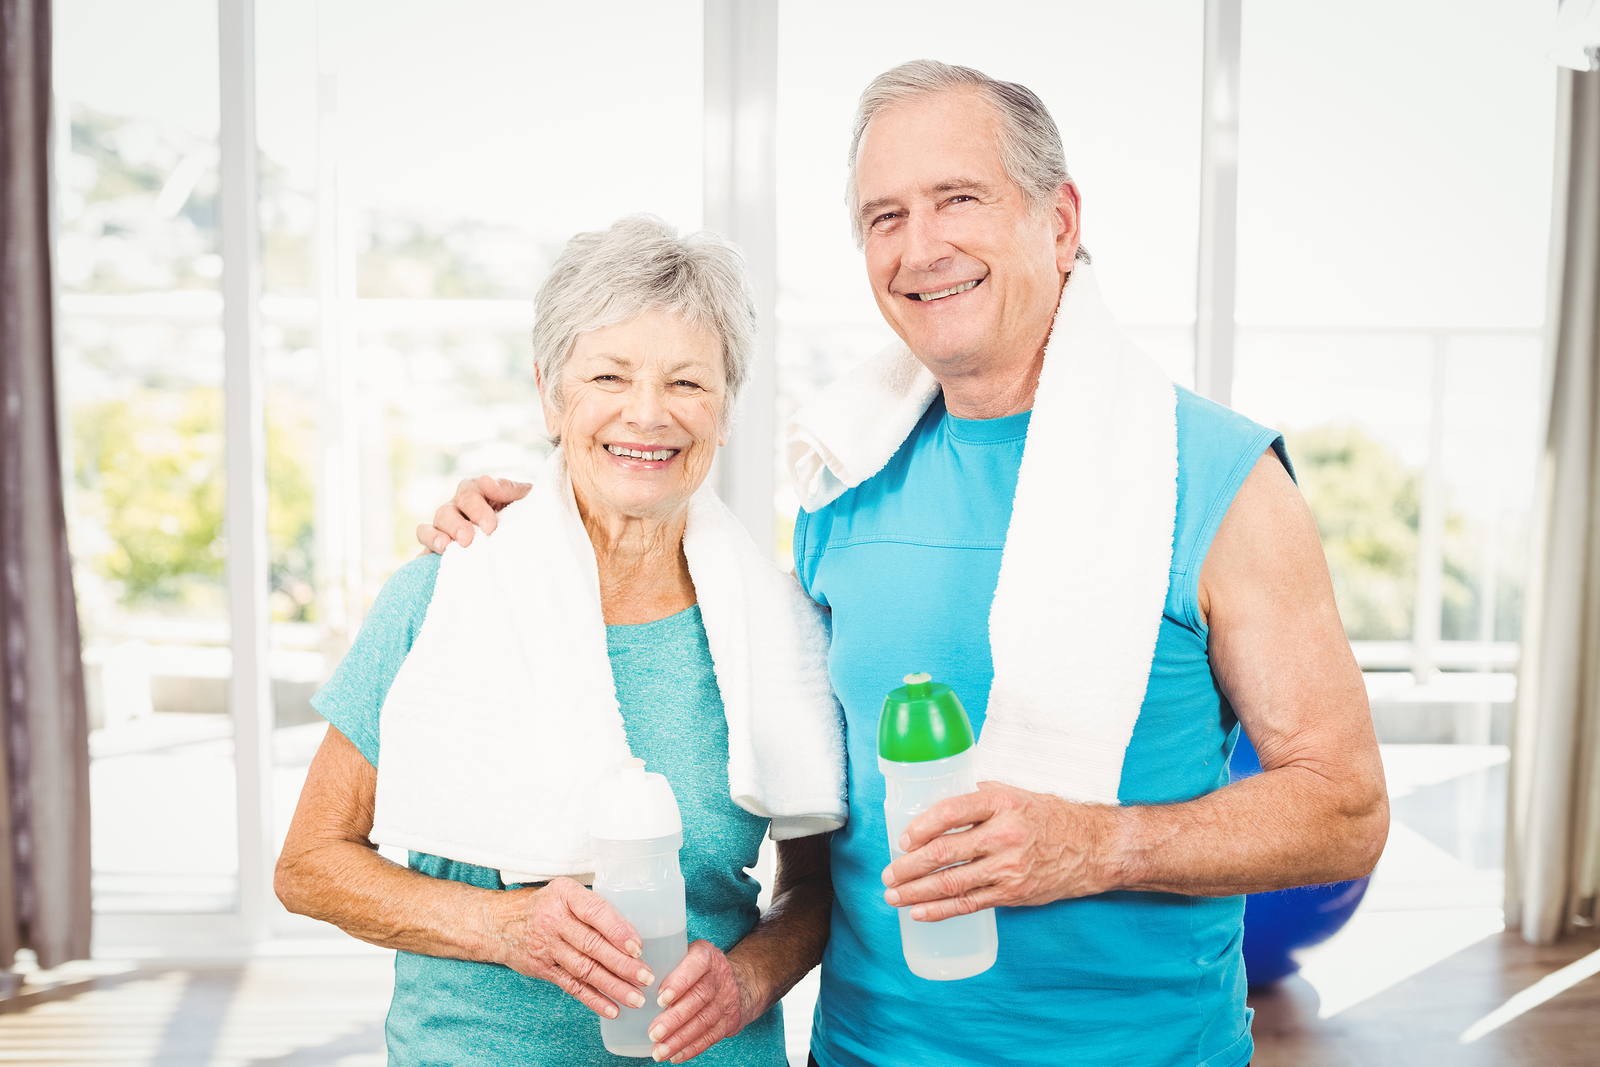 Older adults enjoying taking part in a senior fitness program